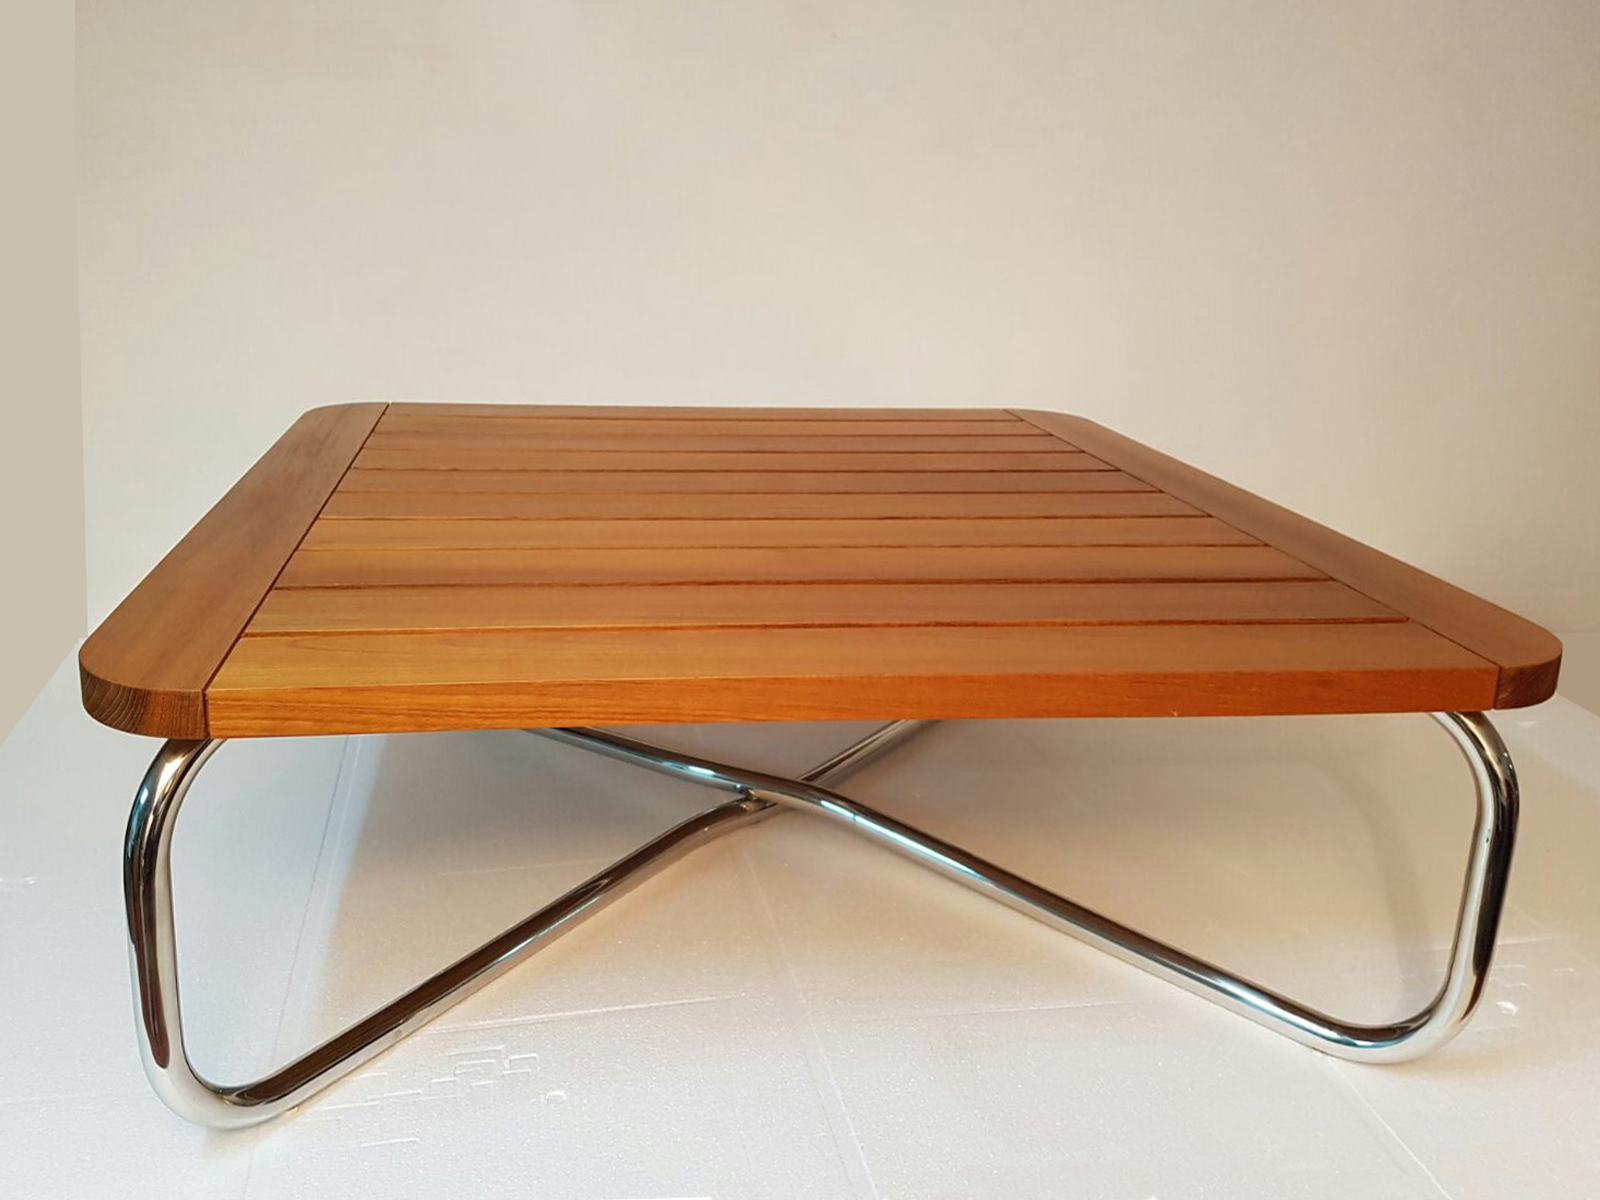 Extra Coffee Tables, Zanotta - Deesup